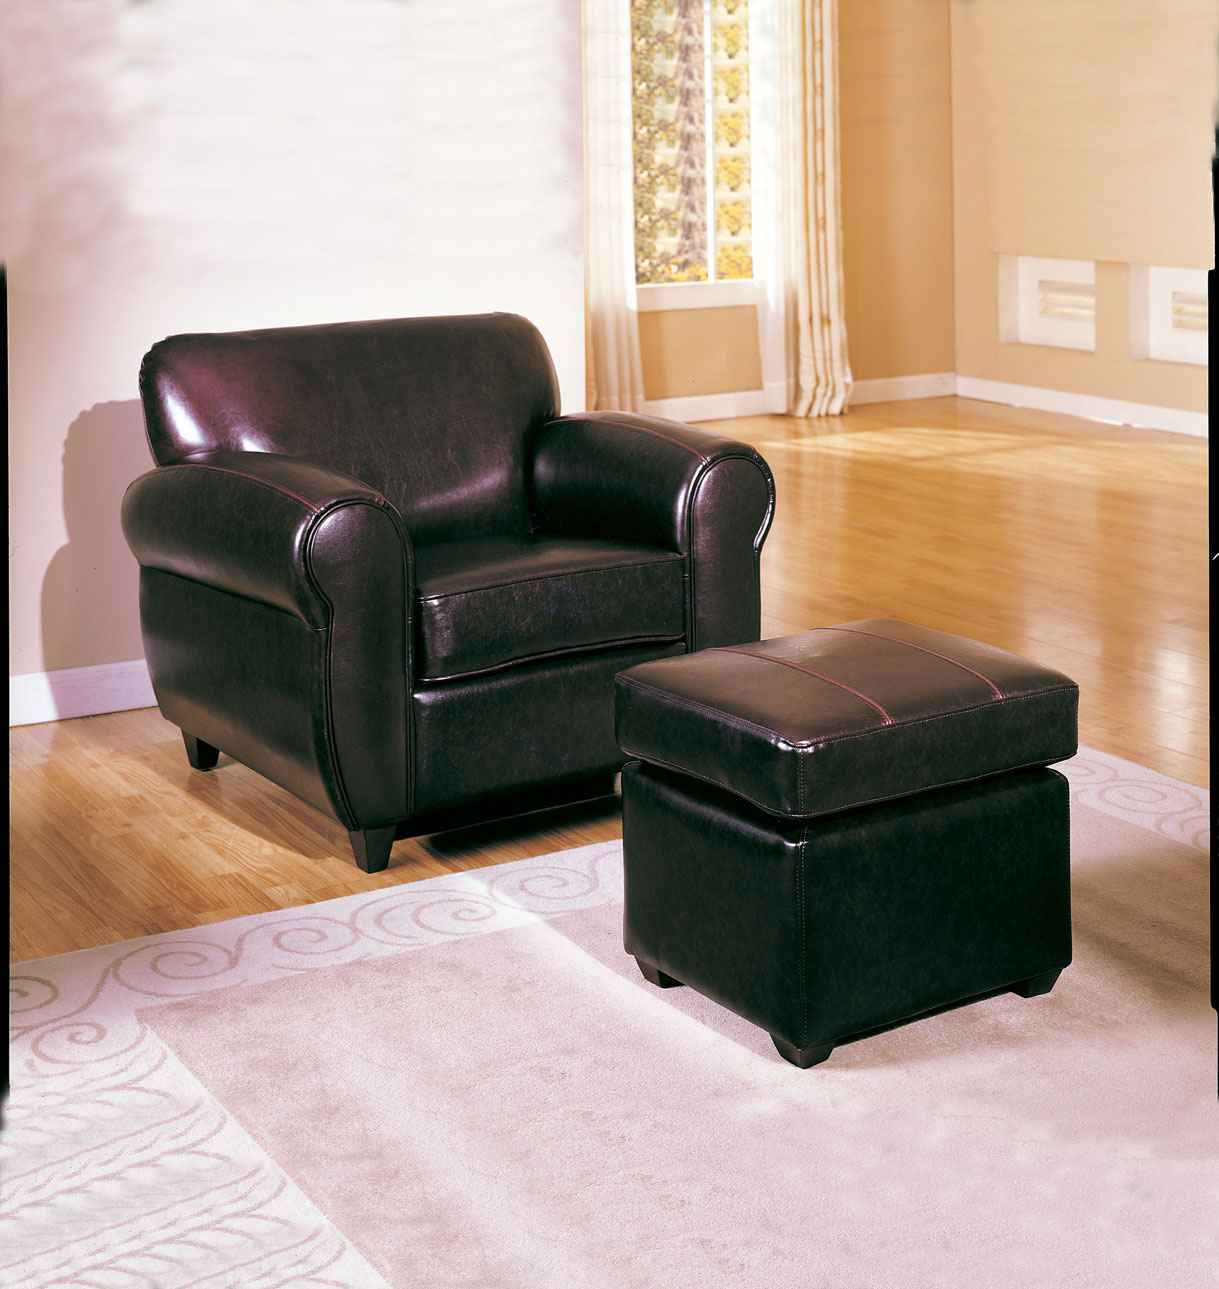 Metro Accent Chair with Ottoman in Espresso